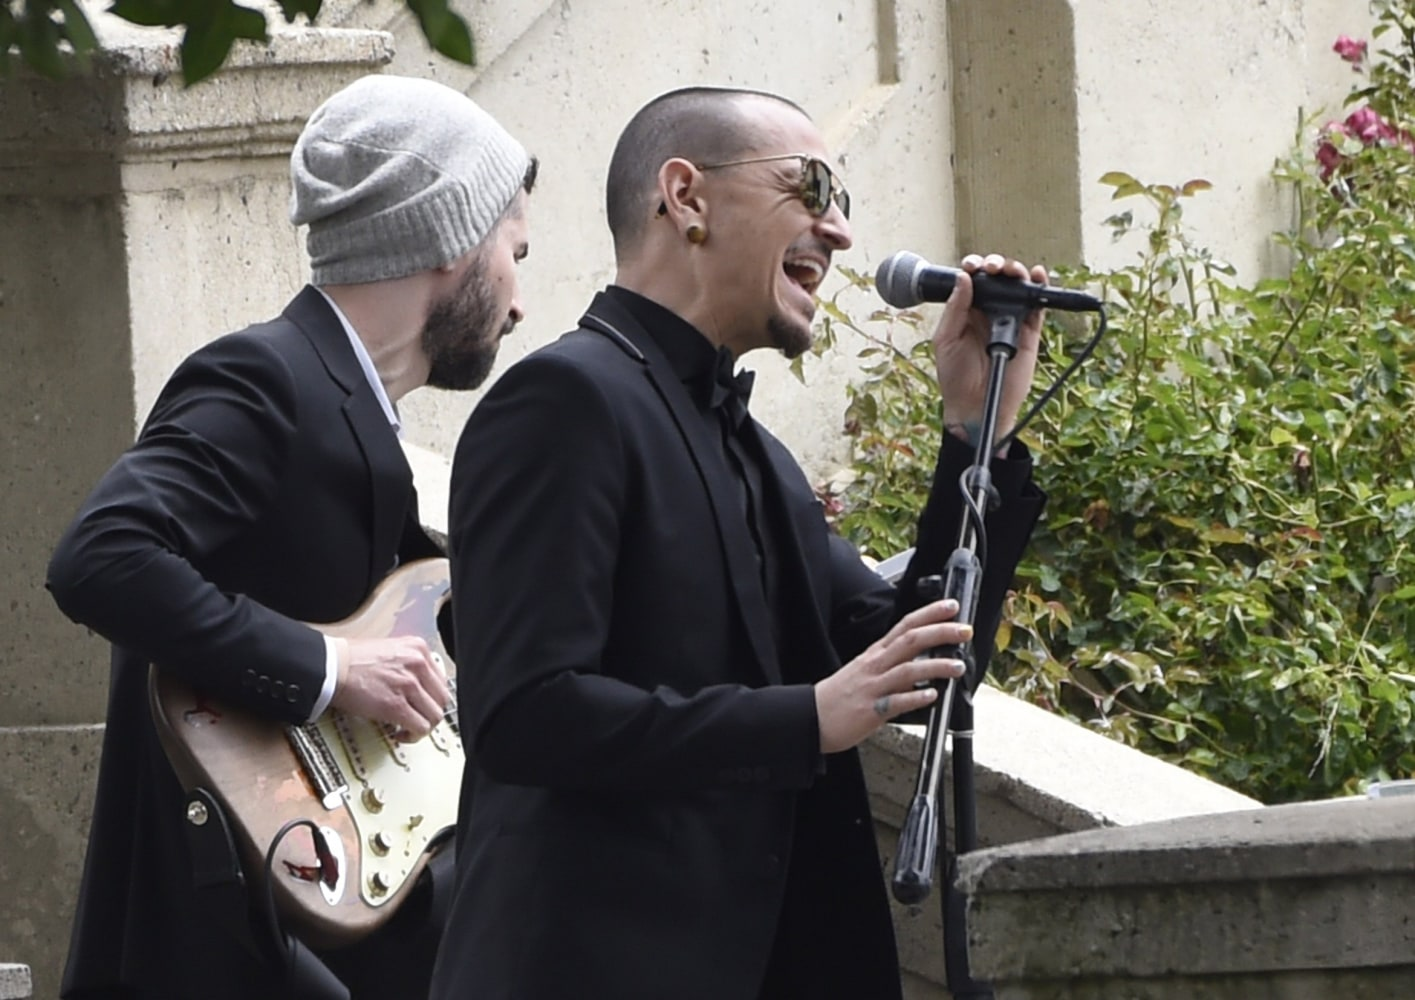 Chester Bennington singing Hallelujah at Chris Cornell's Funeral